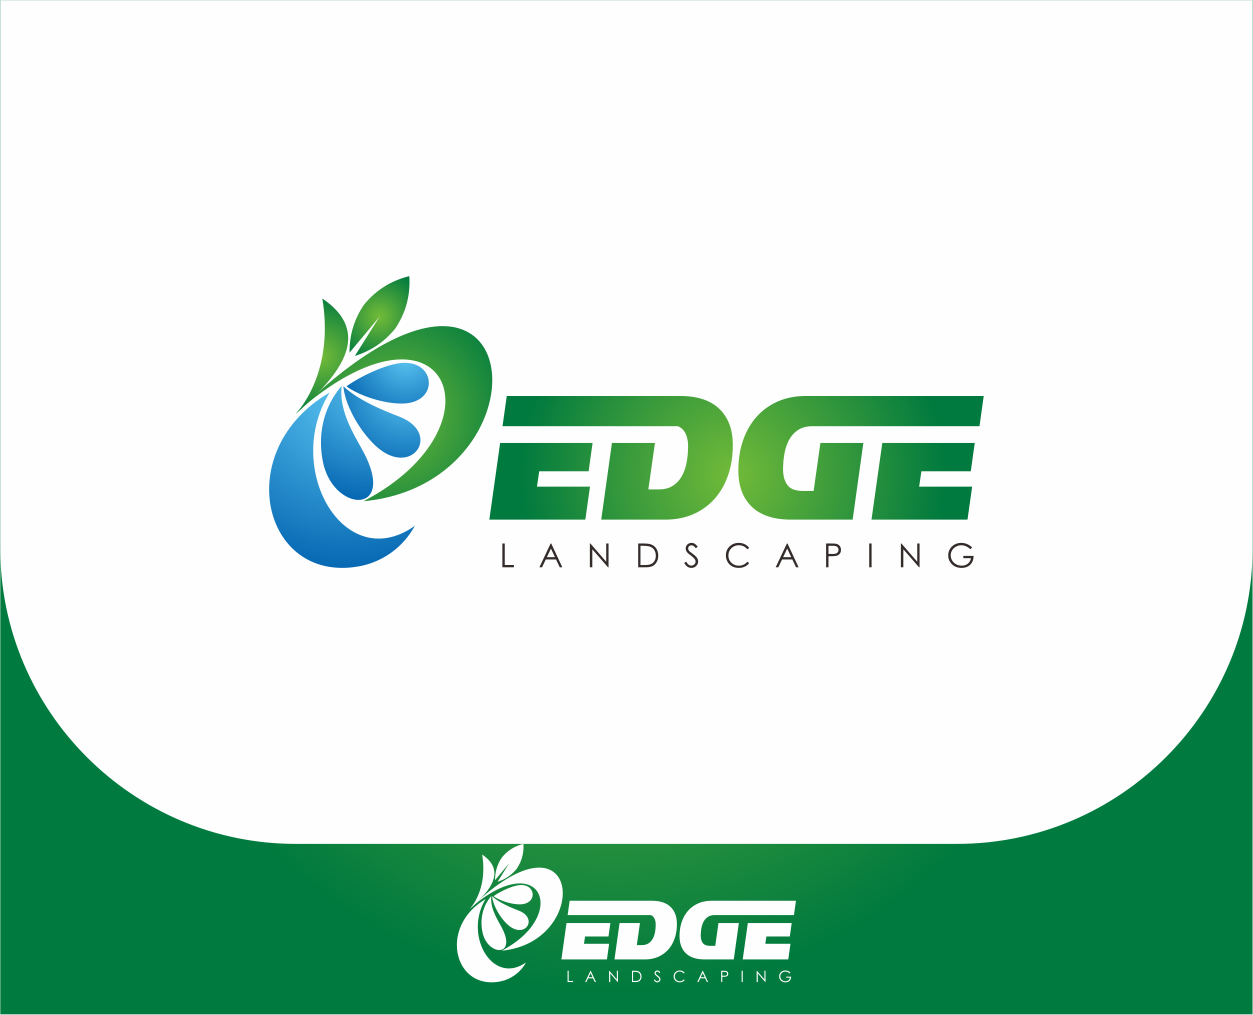 Logo Design by Armada Jamaluddin - Entry No. 226 in the Logo Design Contest Inspiring Logo Design for Edge Landscaping.